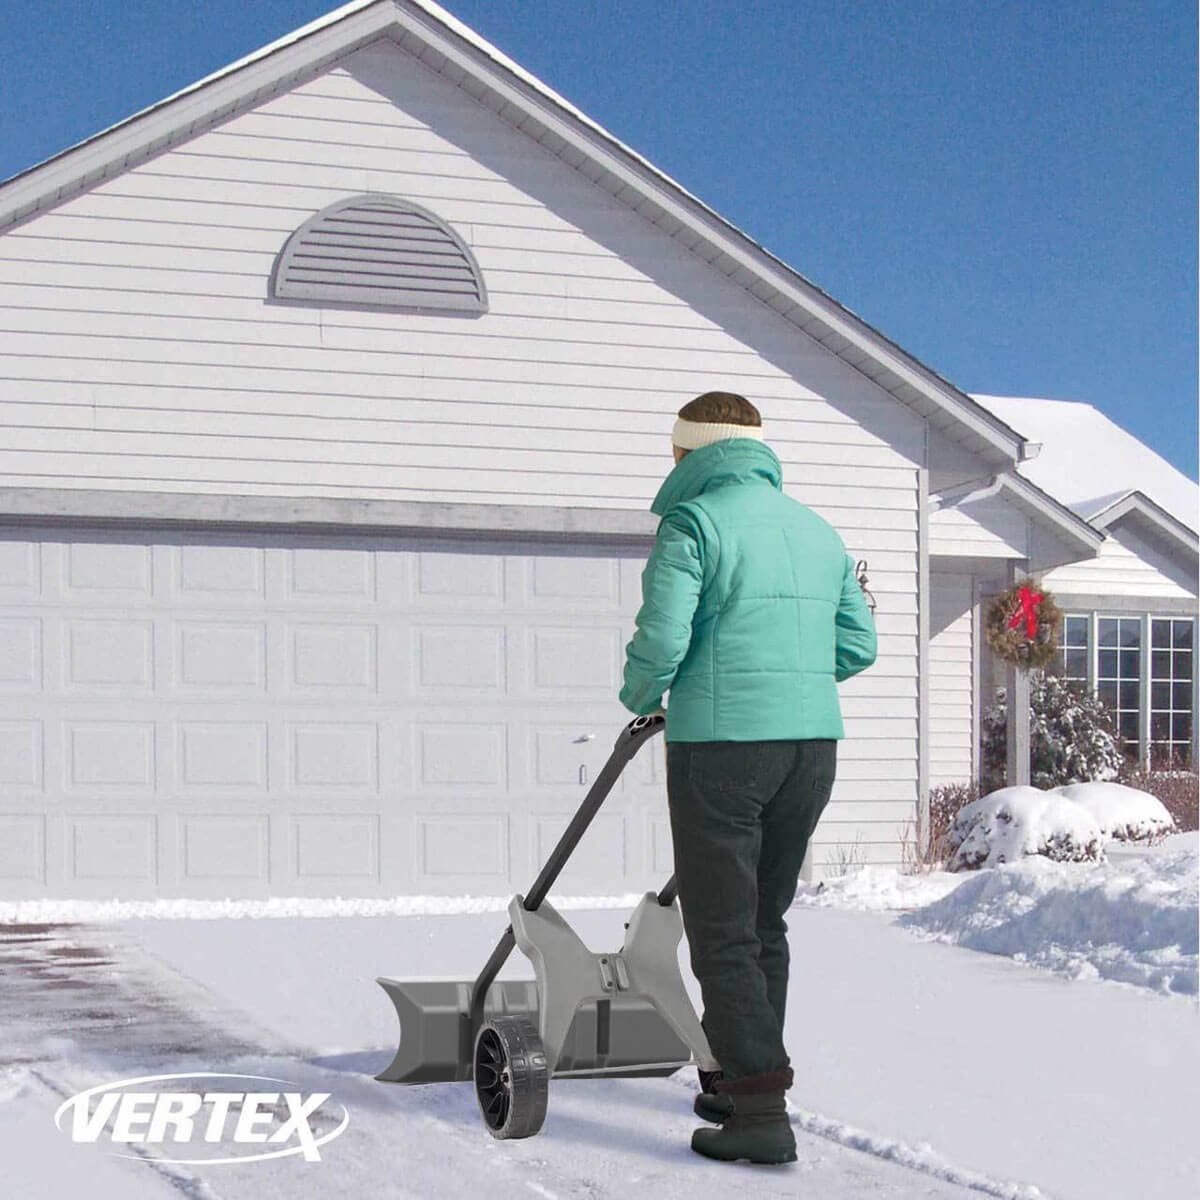 vertex snow pusher snow removal tool